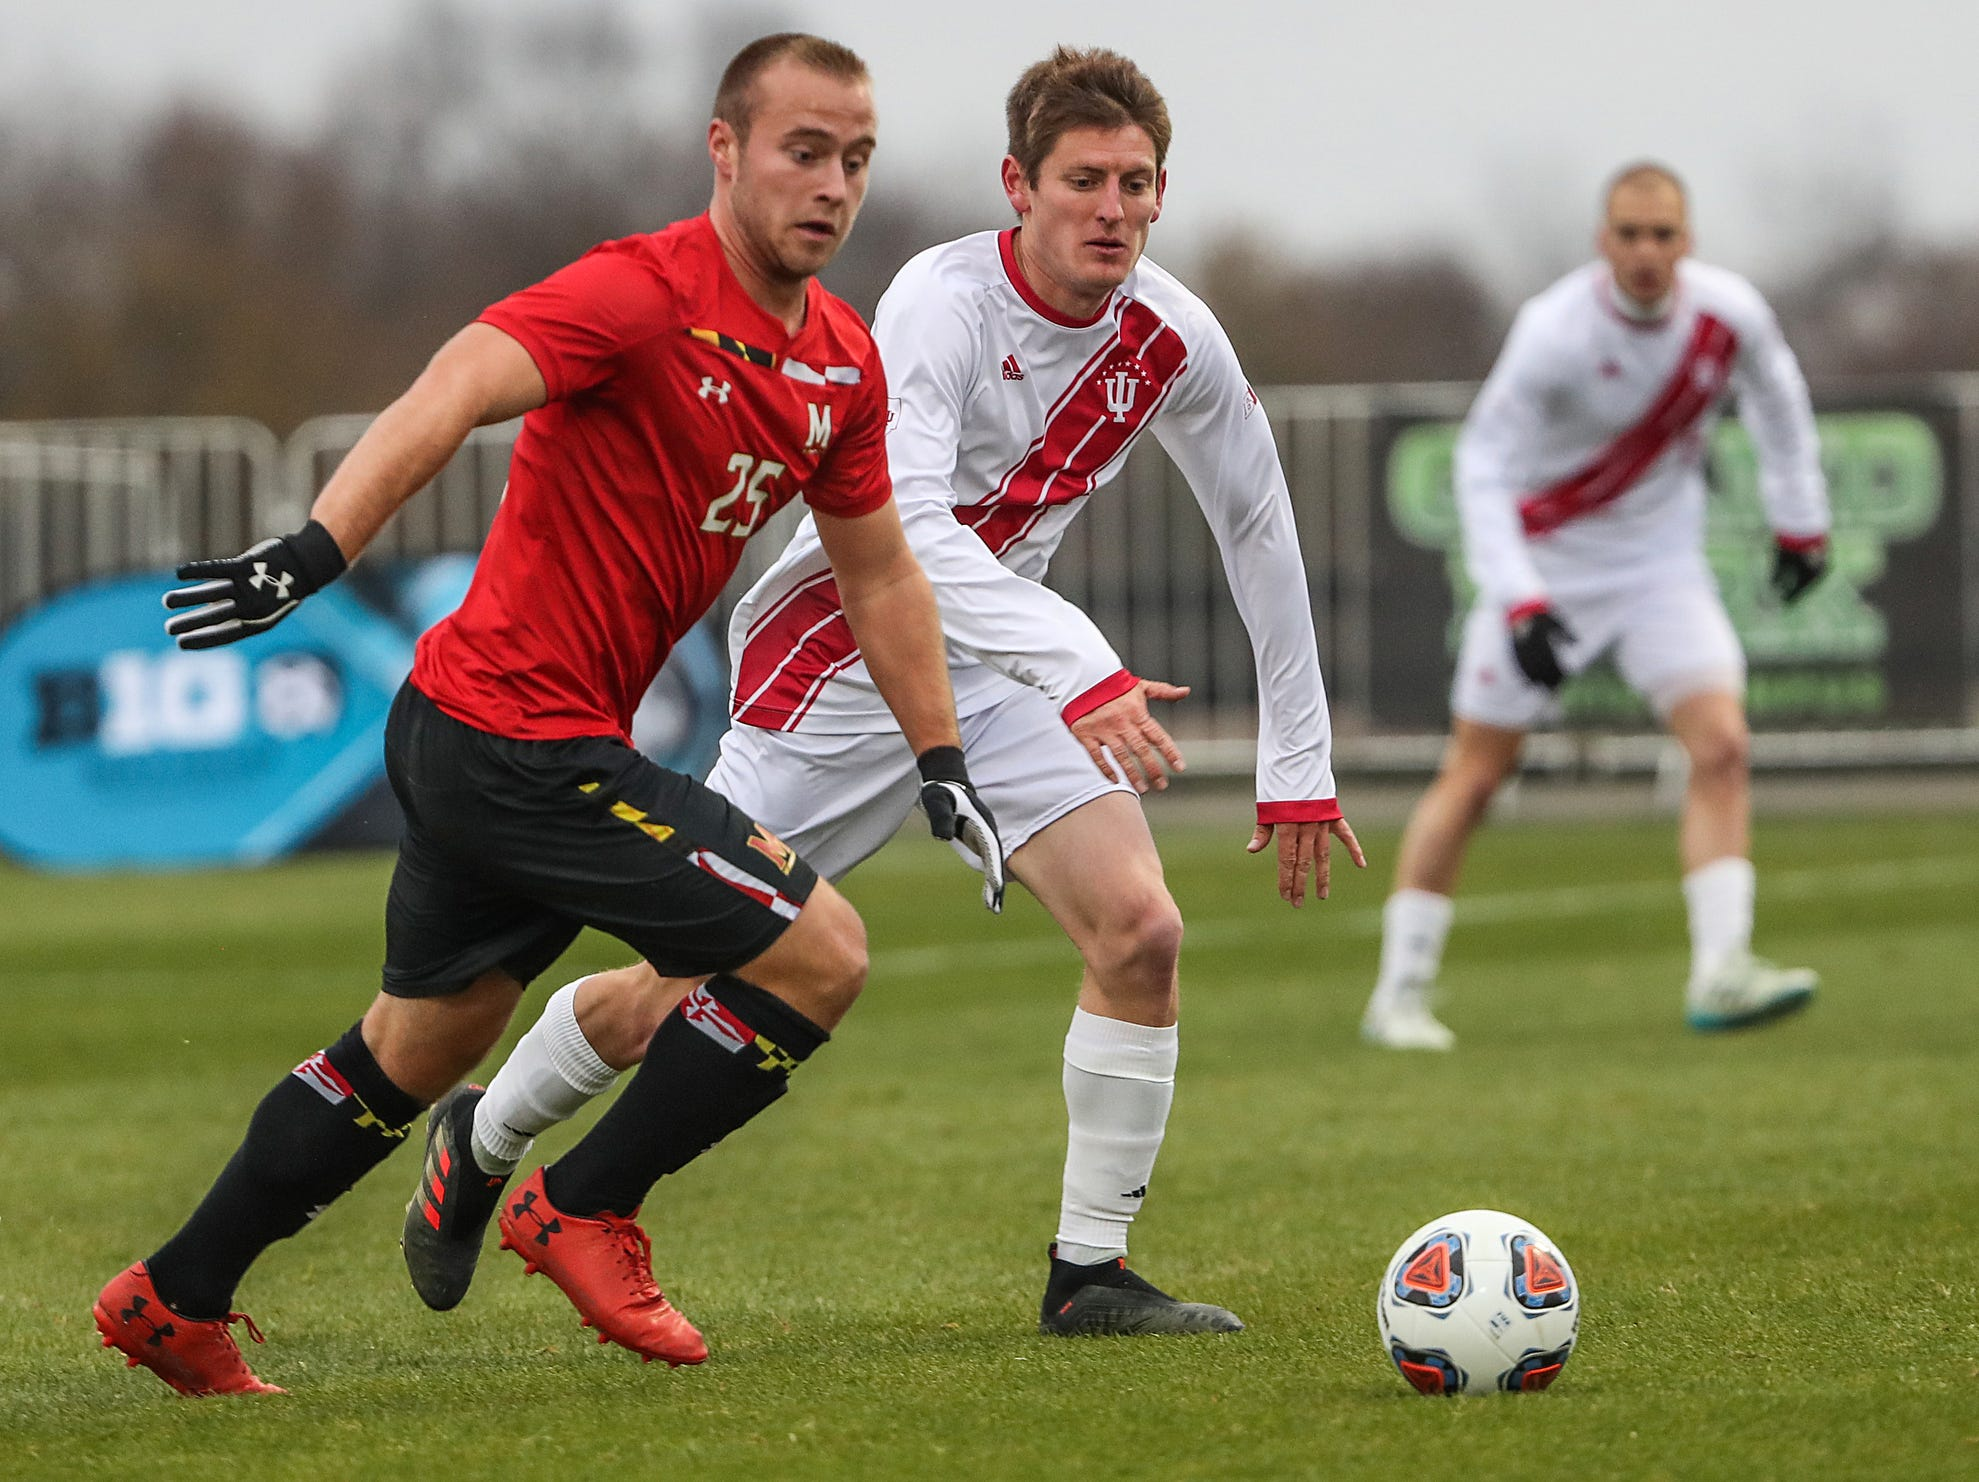 Maryland Terrapins defender Ben Di Rosa (25) moves the ball as Indiana Hoosiers Trevor Swartz (7) approaches from behind during the first half of Big Ten semifinals at Grand Park in Westfield, Ind., Friday, Nov. 9, 2018. Indiana and Maryland tied 1-1, with the Hoosiers advancing in penalty kicks, 4-3.